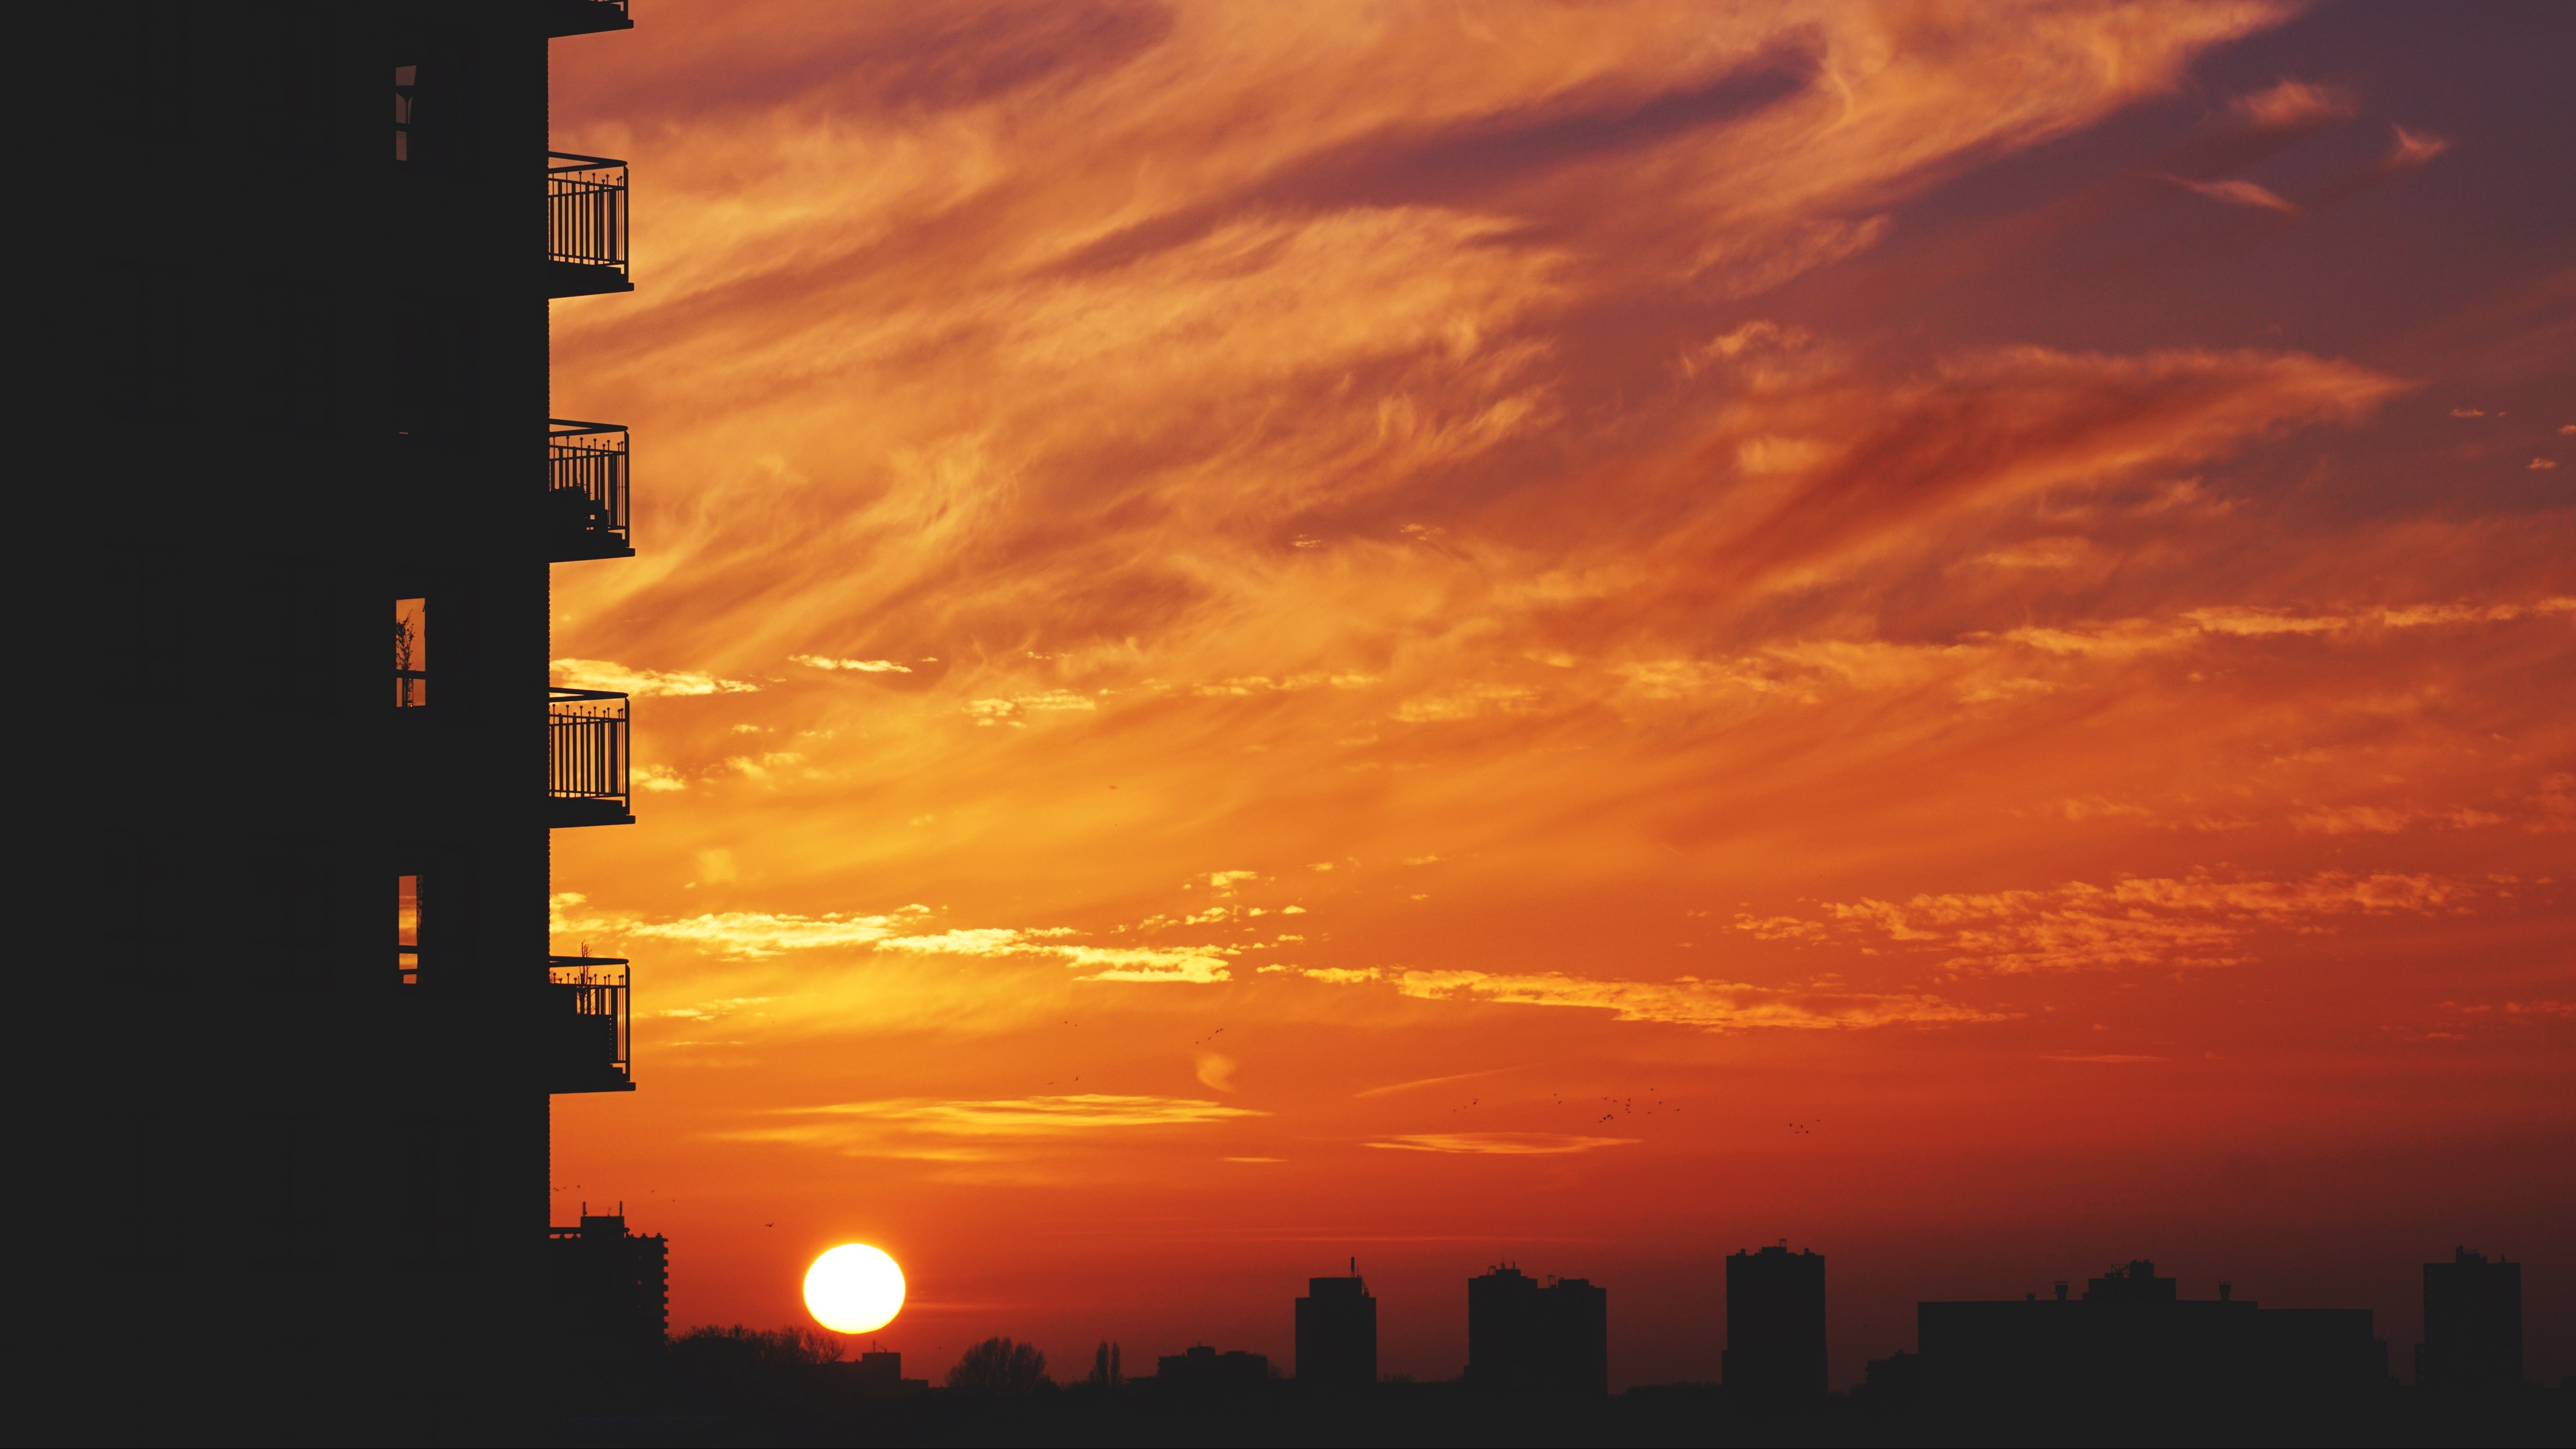 balcony sunset sky skyline city 4k 1538064997 - balcony, sunset, sky, skyline, city 4k - sunset, Sky, balcony